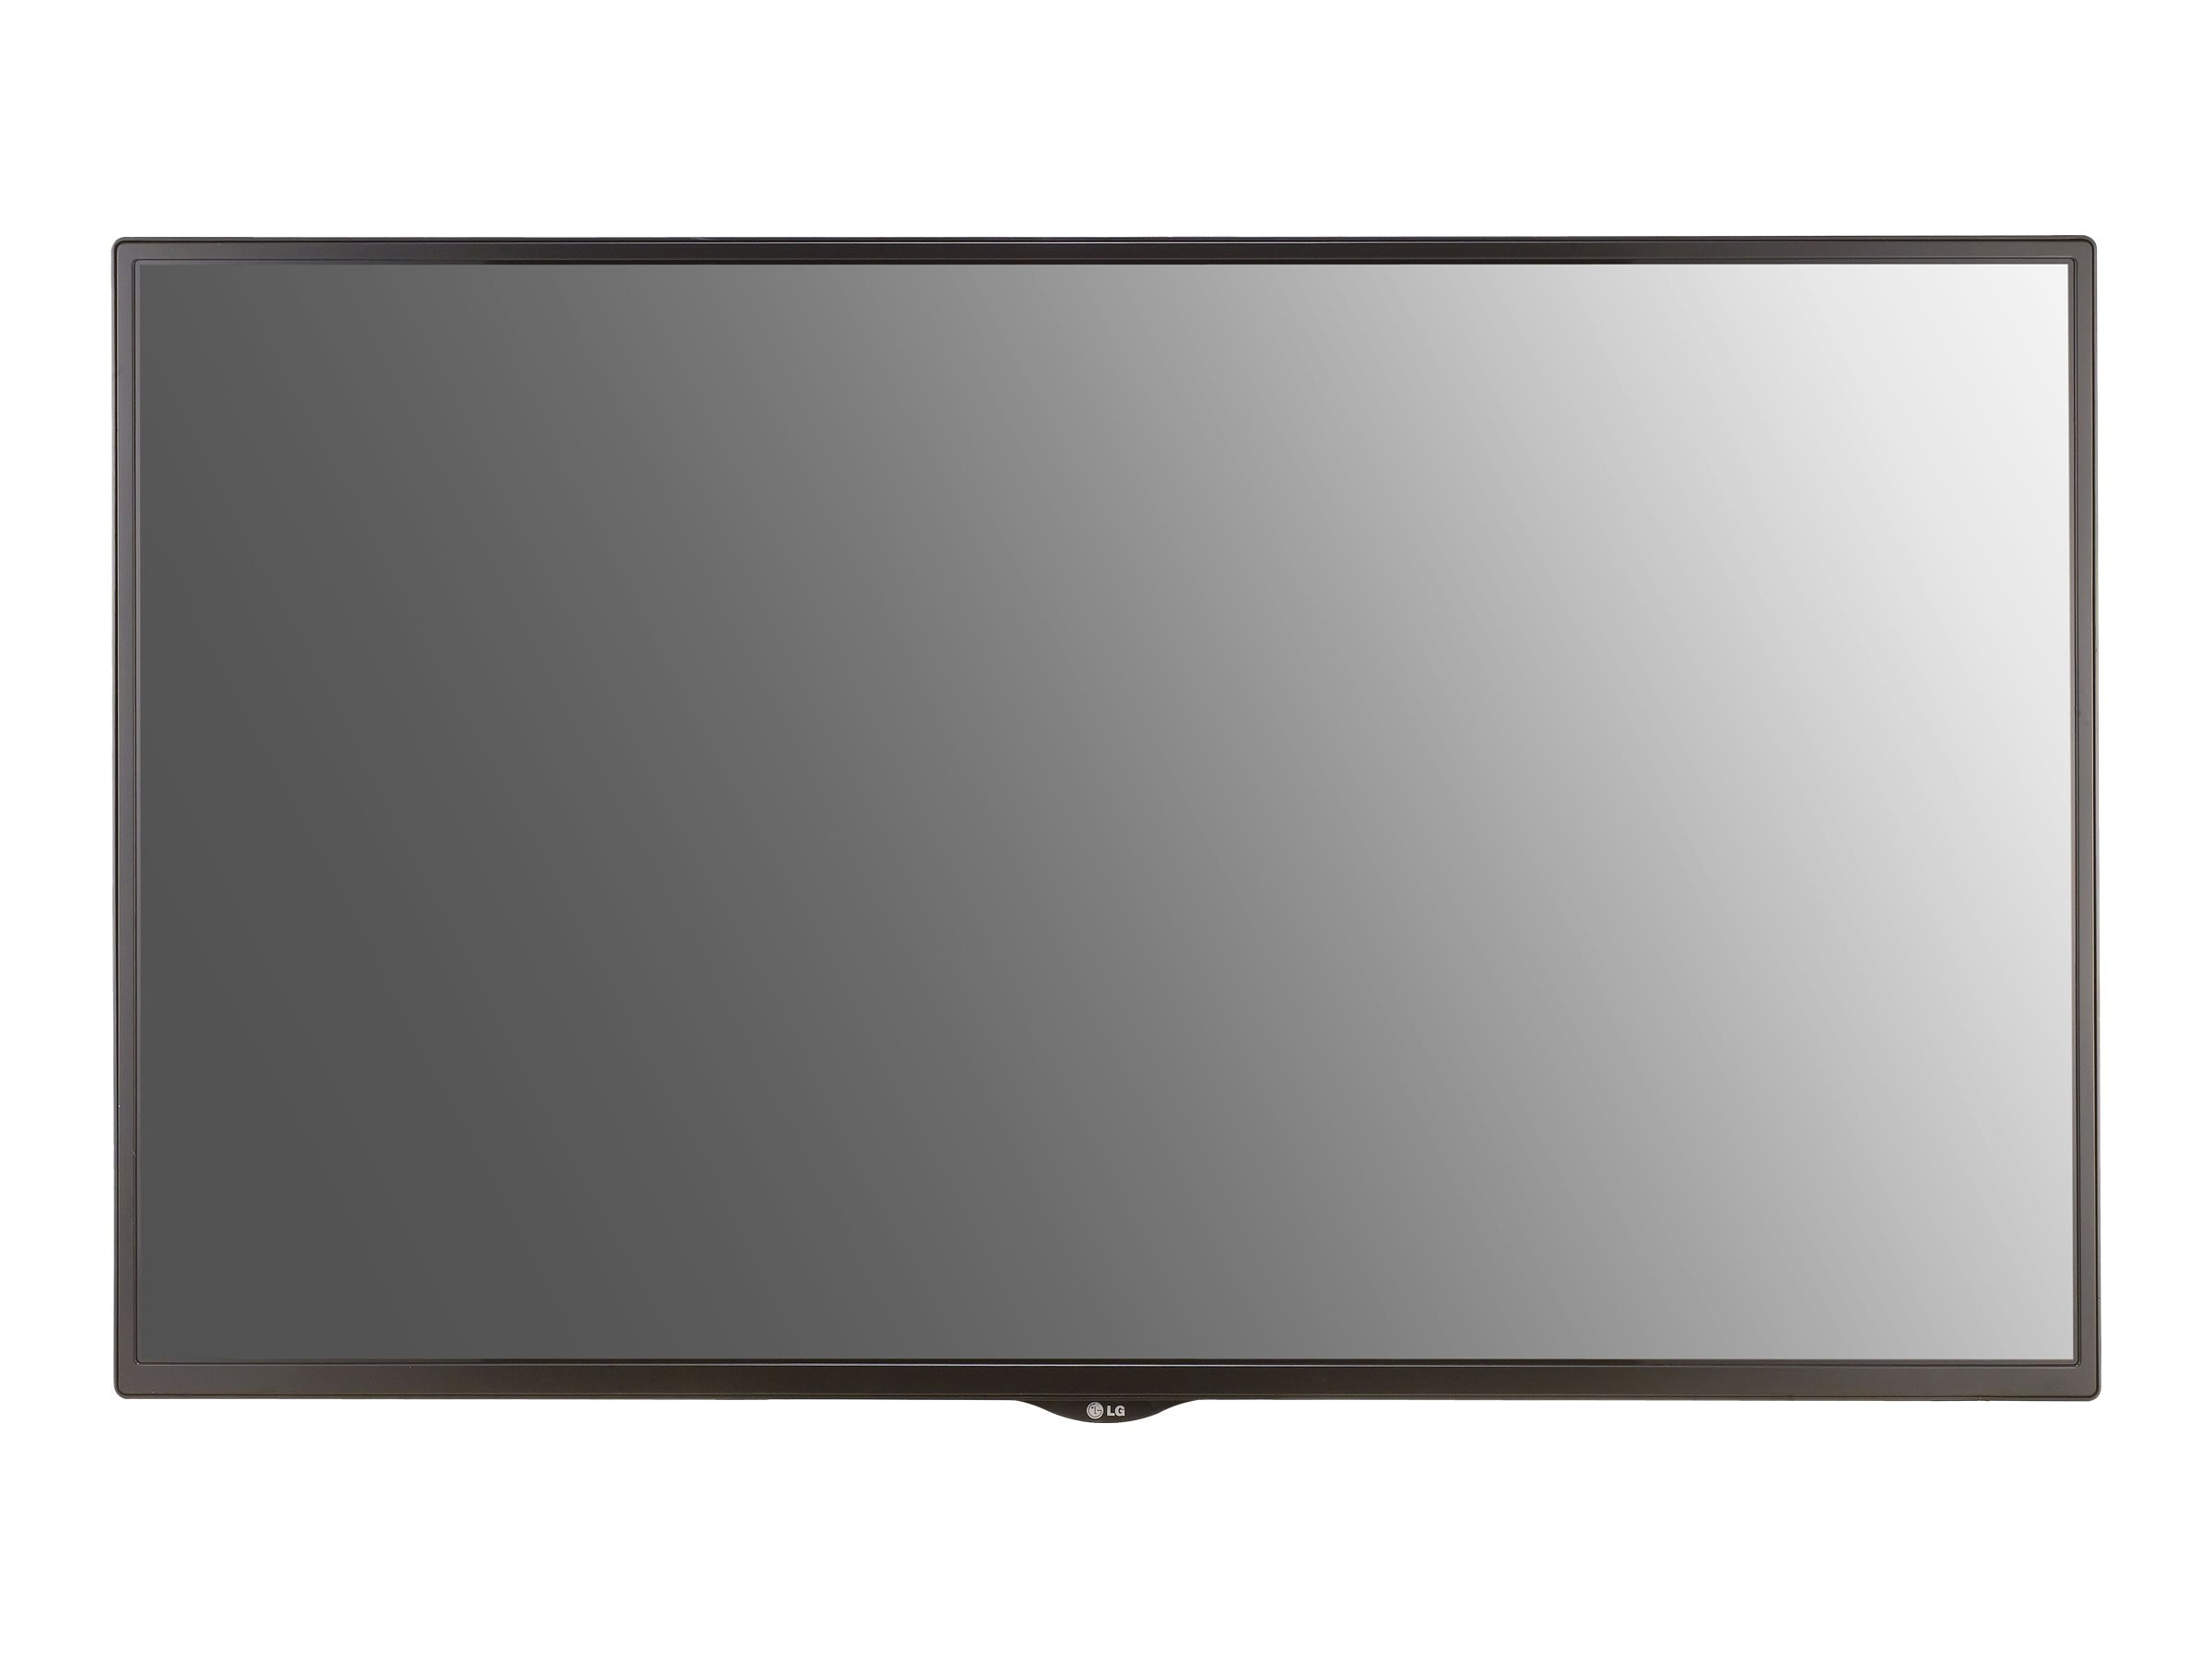 LG 43 Full HD LCD Monitor, 450 Nits, 18 7